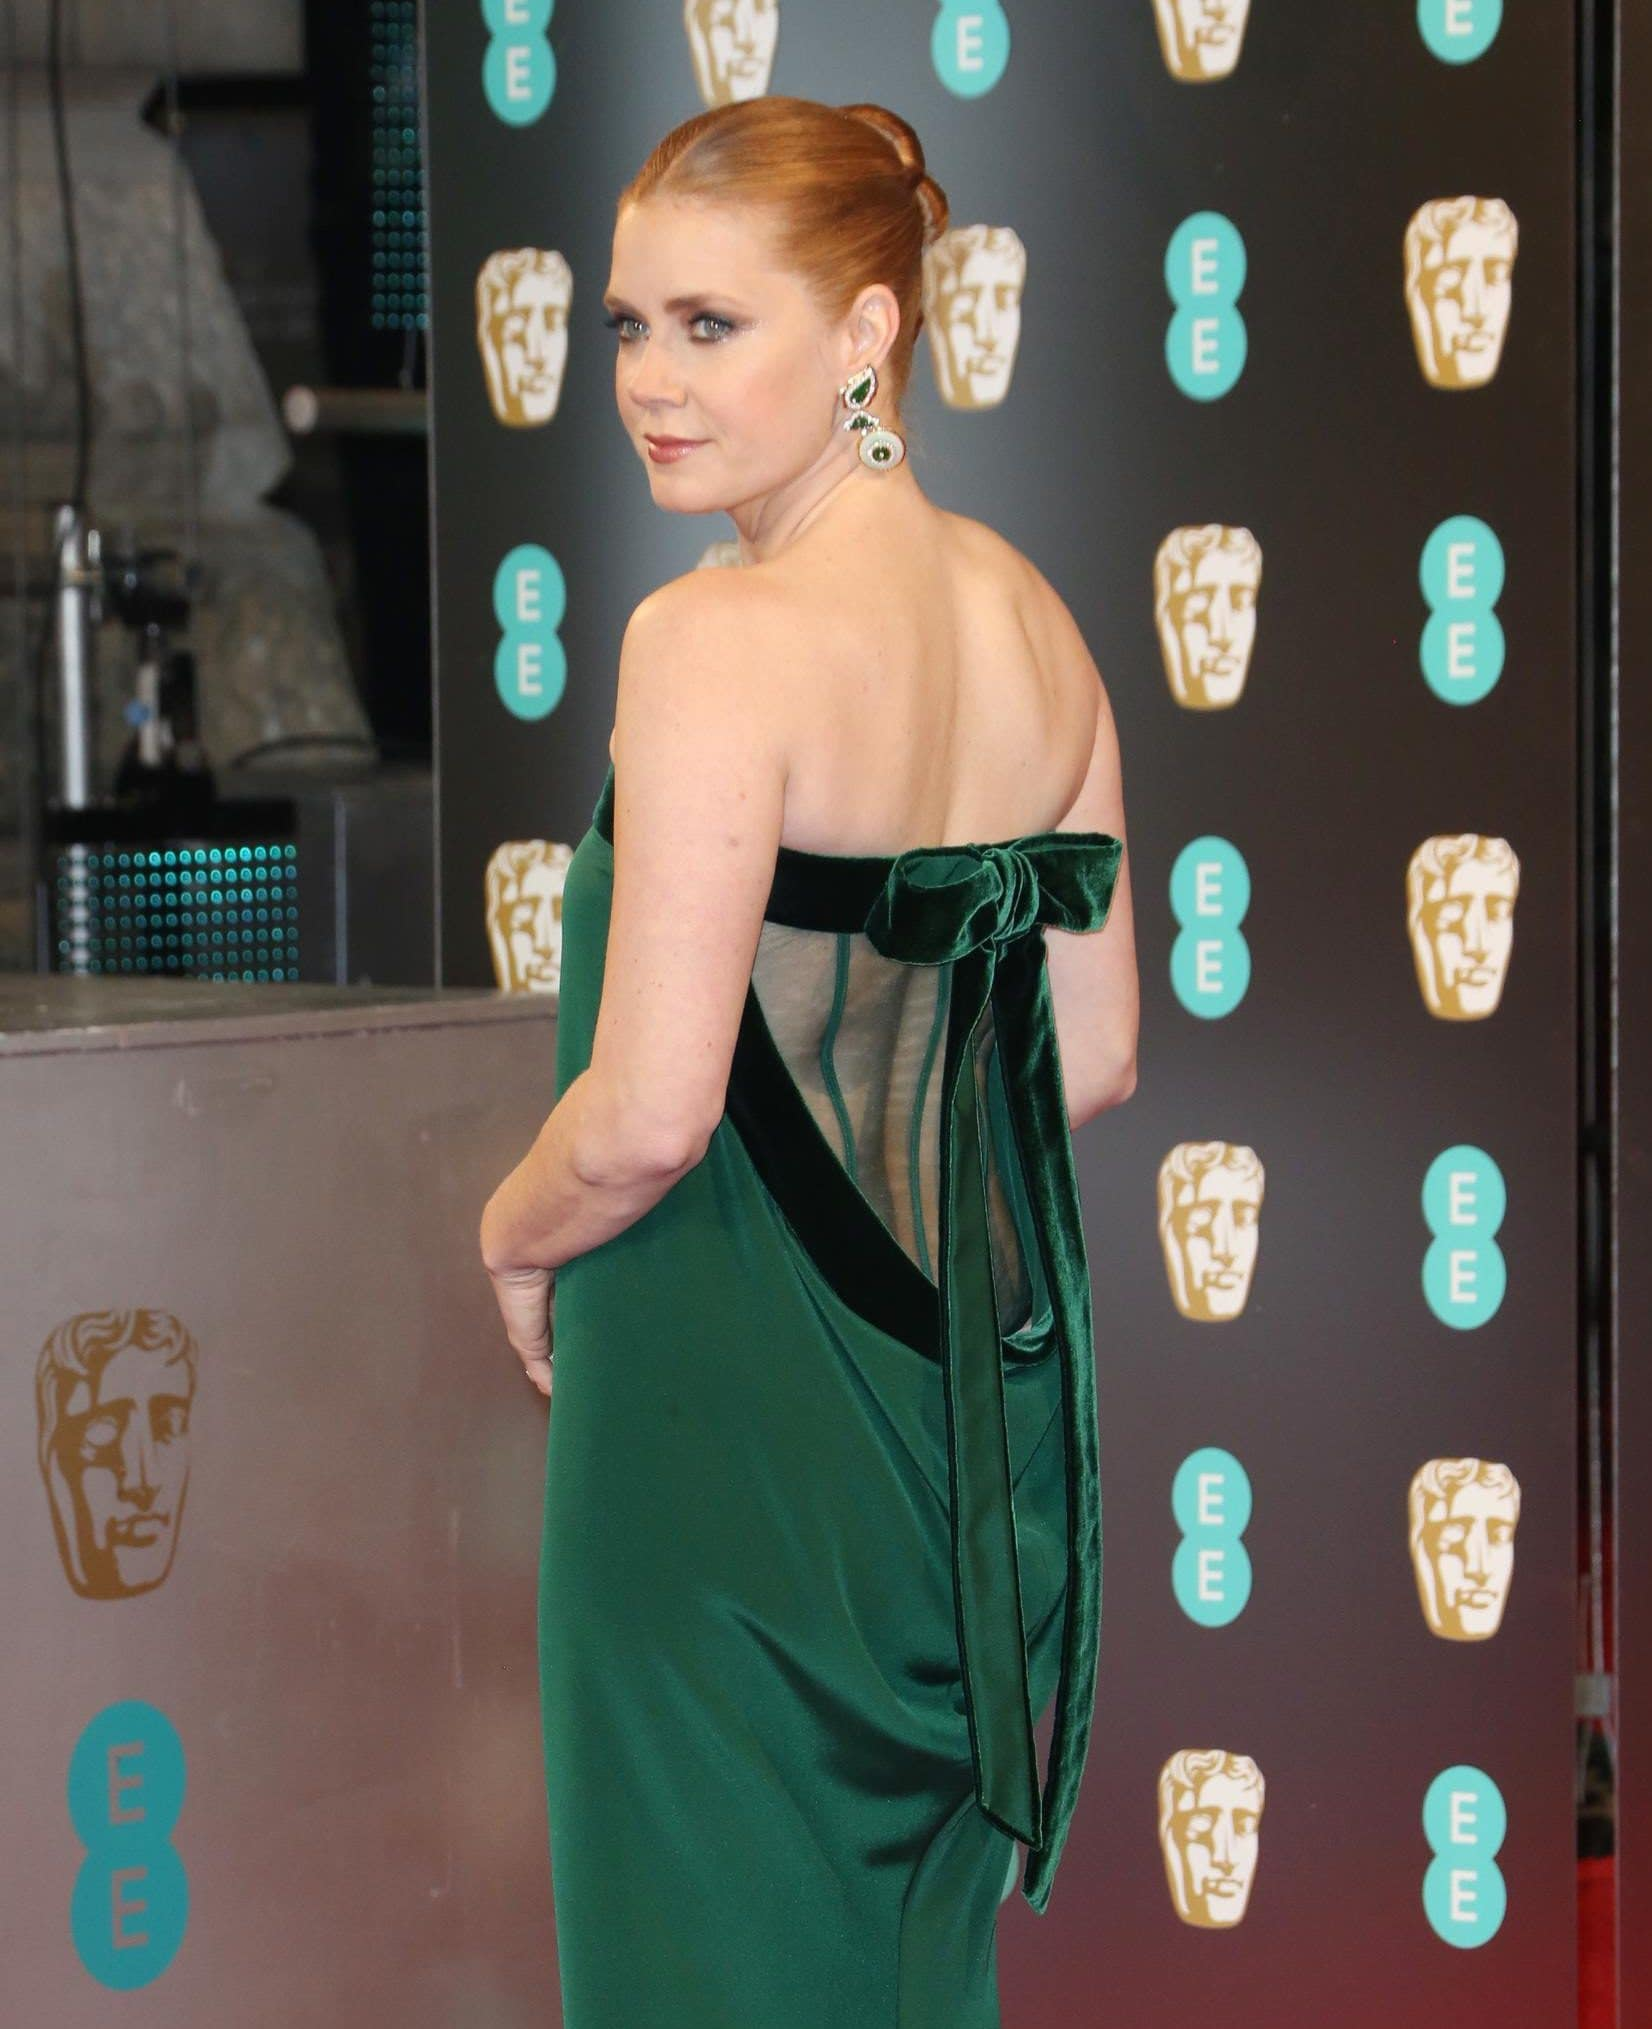 Amy Adams at the baftas 2017 in a mesh green dress with her red hair styled into a ballerina bun